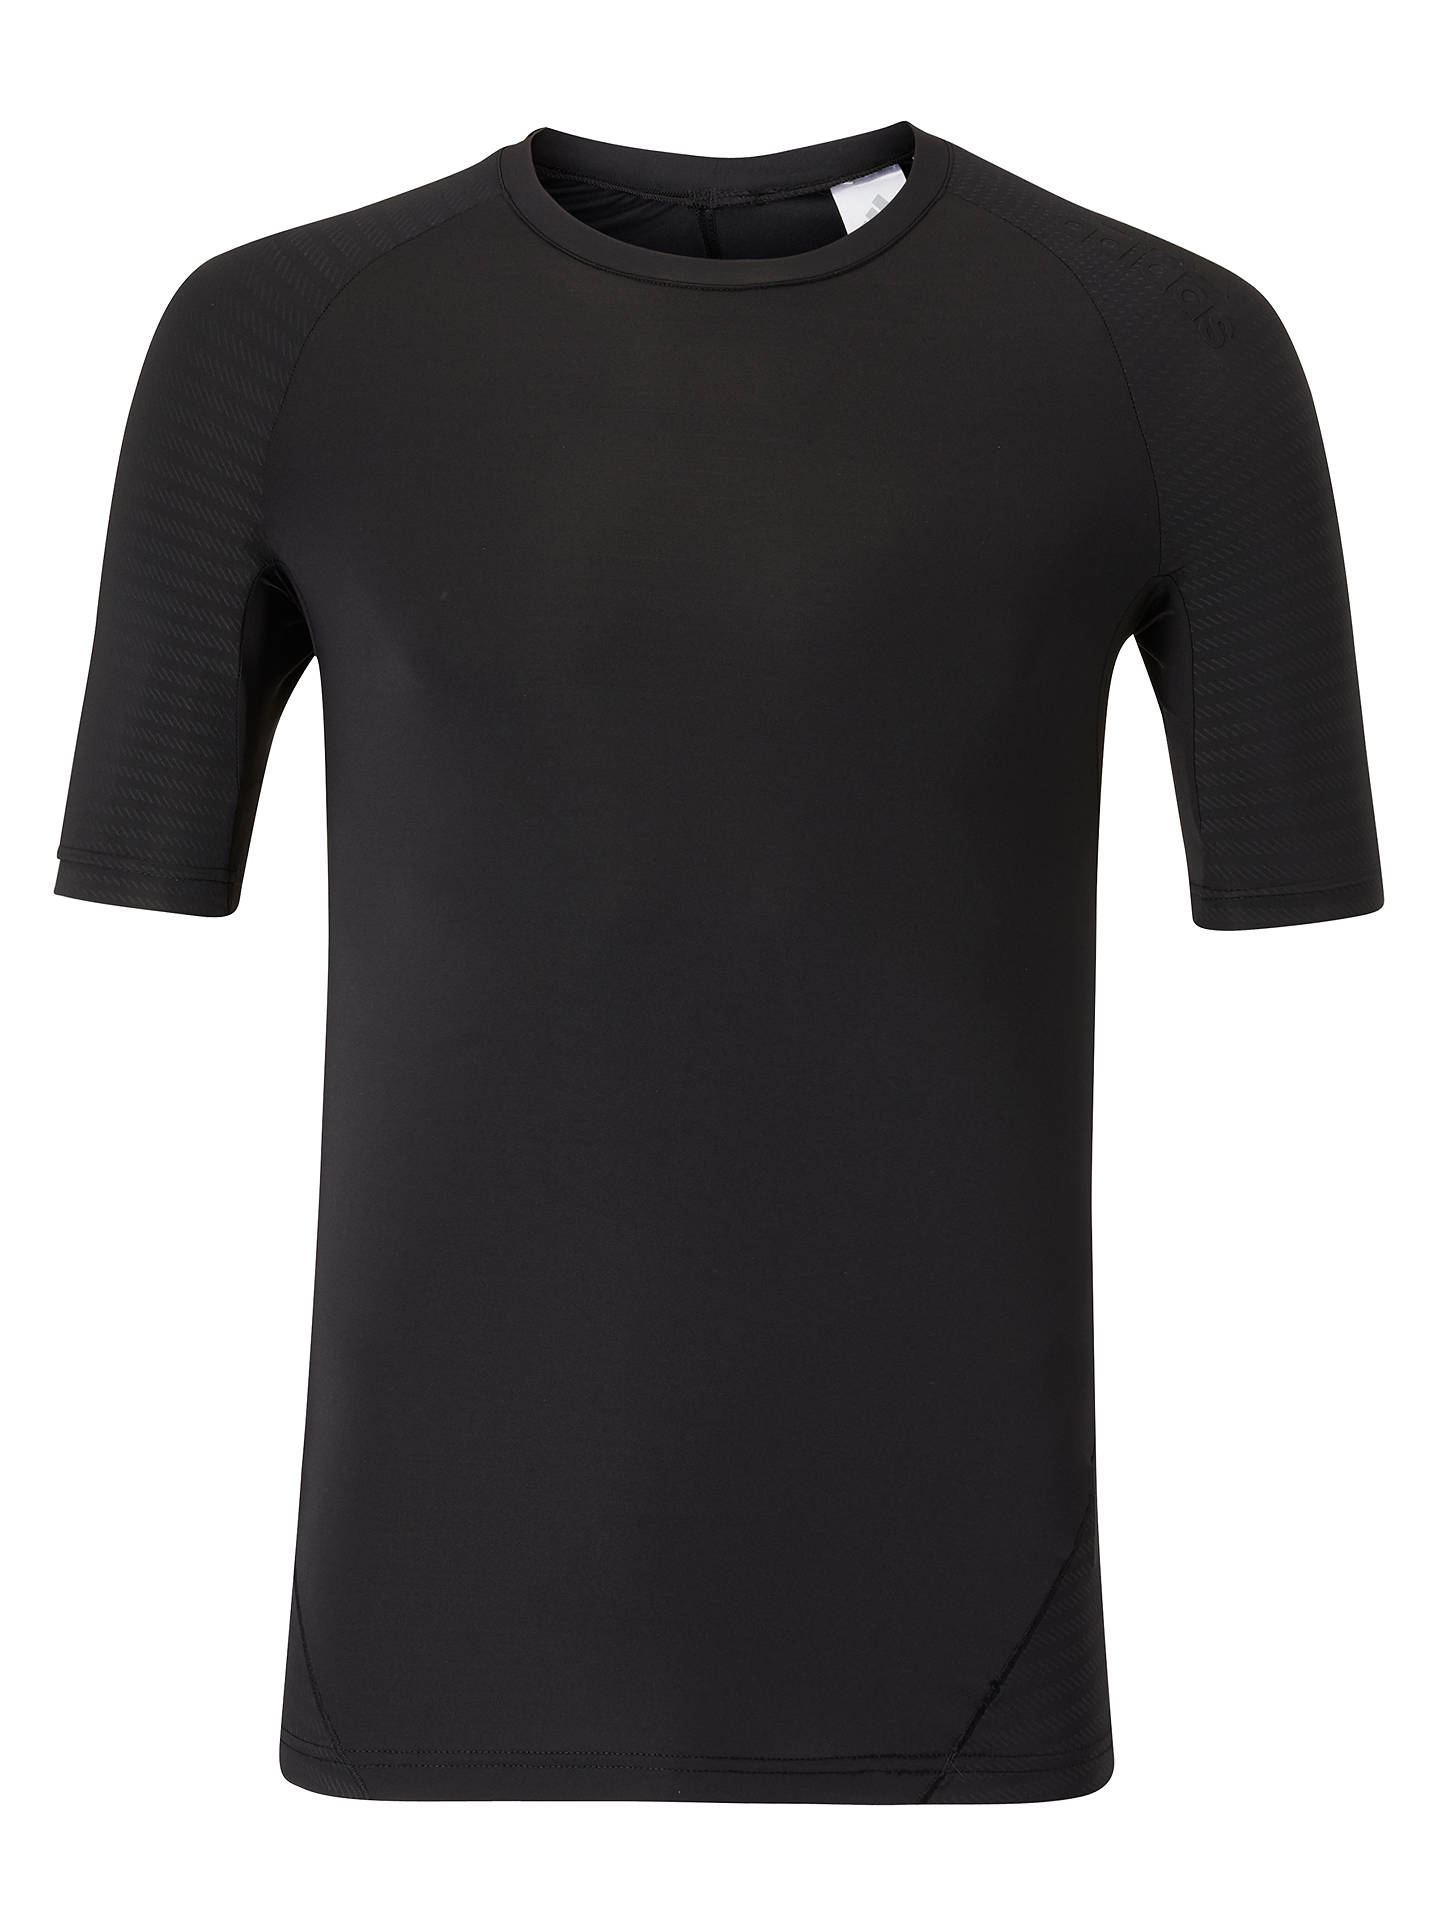 Buyadidas Alphaskin Tech Compression Top, Black, S Online at johnlewis.com